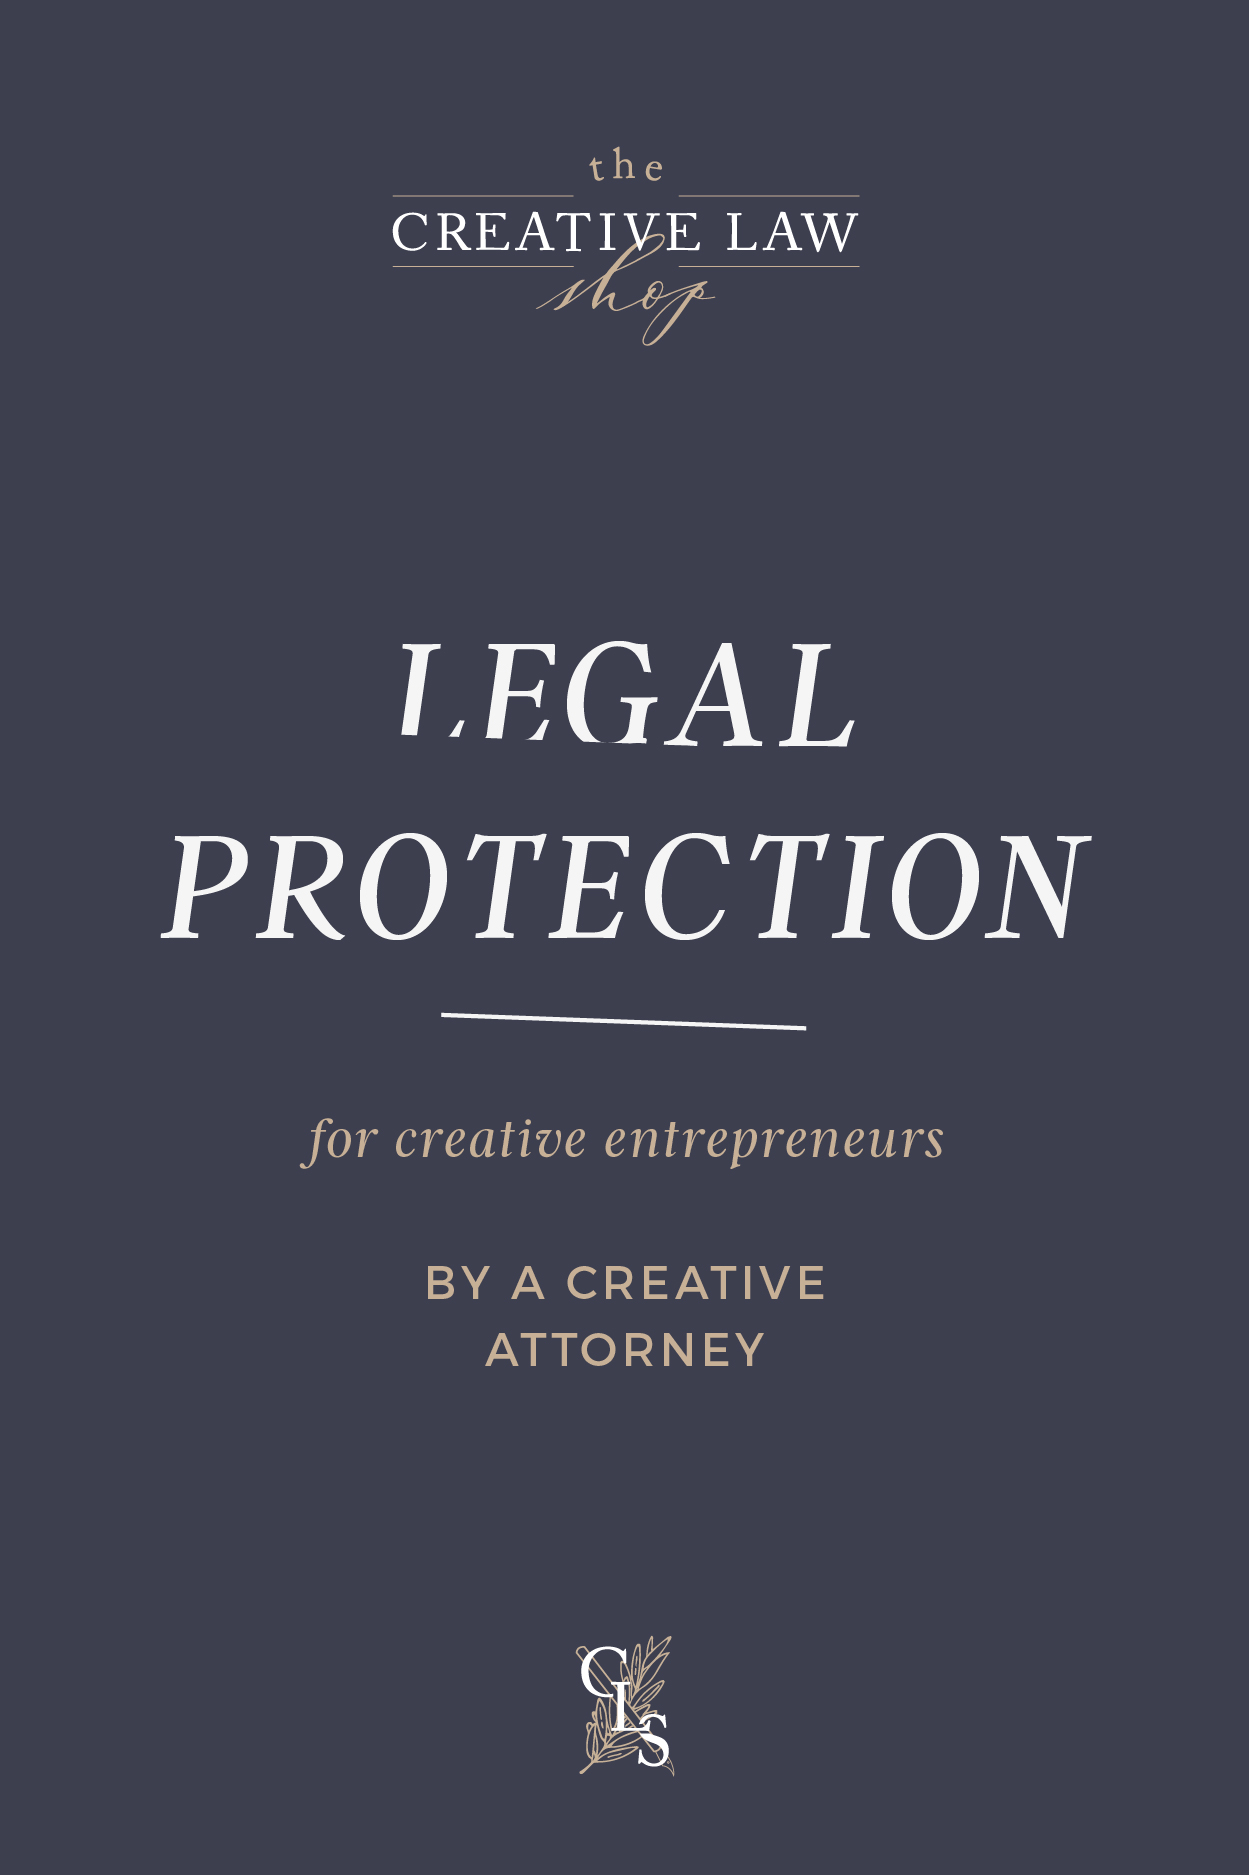 Pinterest-CLS-LegalProtection-01.jpg